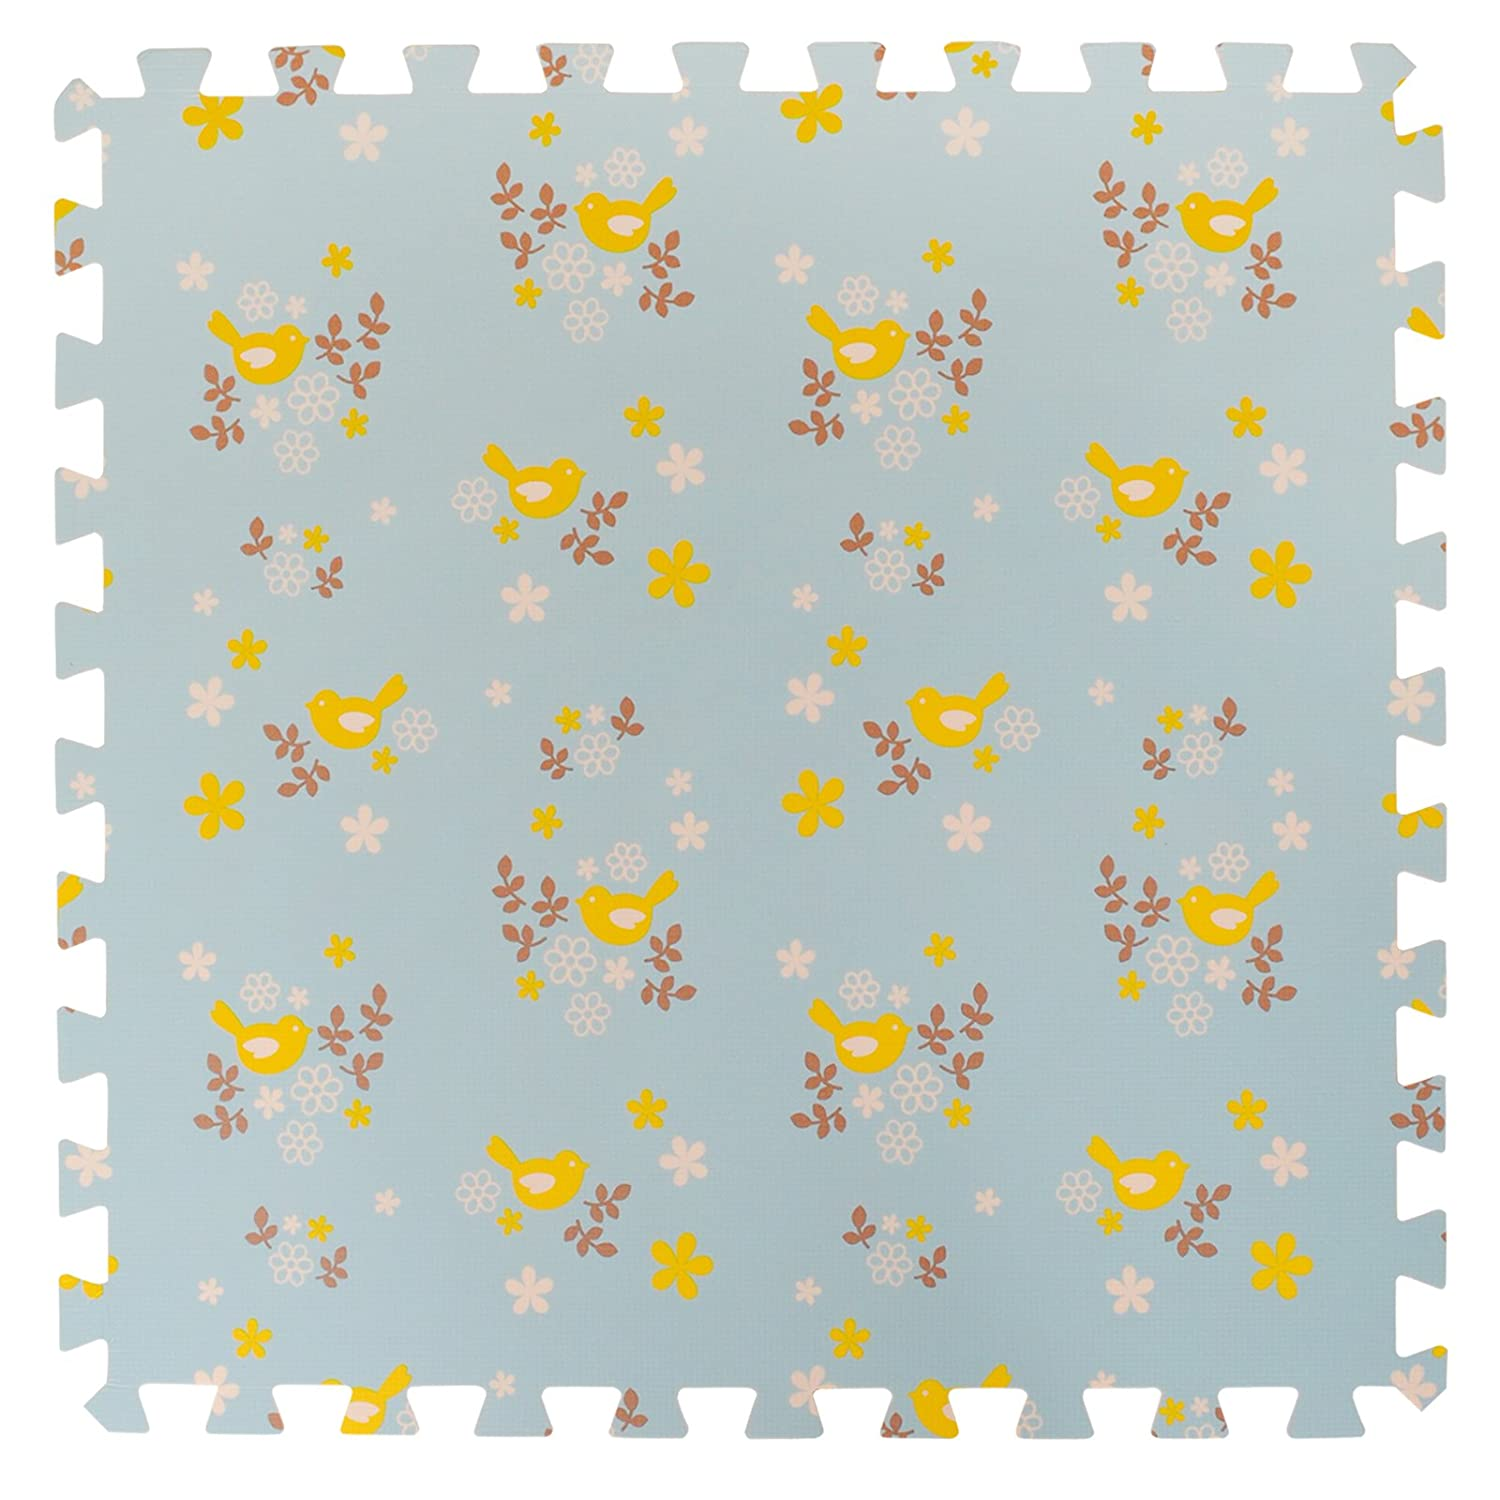 4 Large Children's Blue Foam Play Mats with Edges - 4 Large Soft Interlocking Floor Mats with Yellow Bird Pattern for Children. Each tile 60 x 60cms. Total 1.2m2. For the Love of Leisure